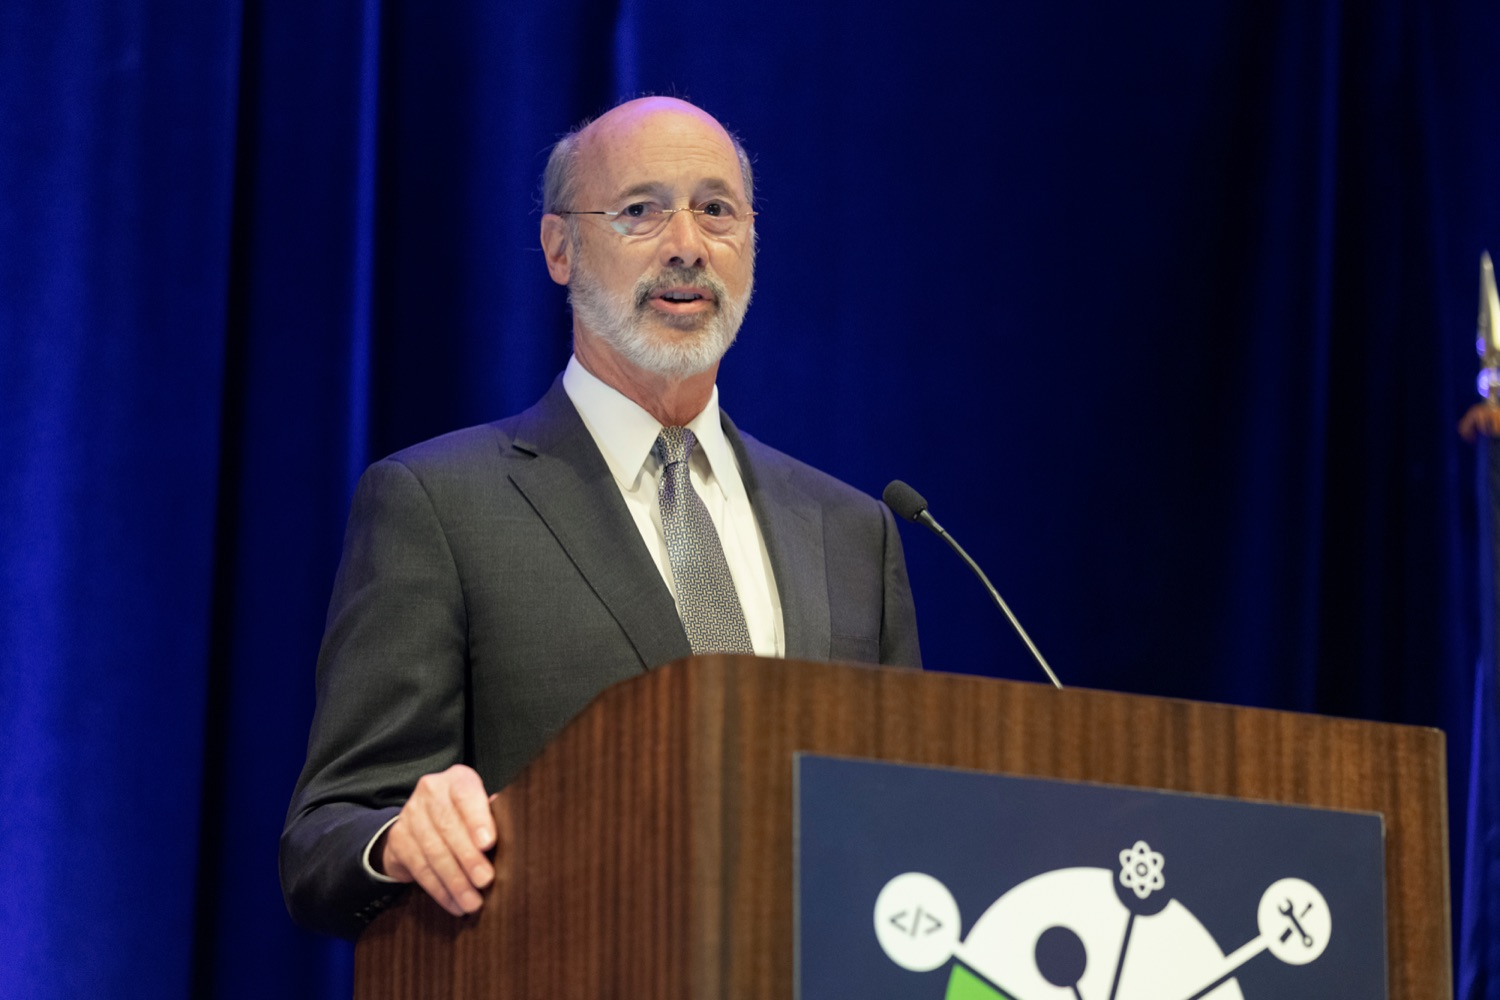 "<a href=""http://filesource.abacast.com/commonwealthofpa/photo/17520_LandI_Apprenticeships_NK_011.JPG"" target=""_blank"">⇣ Download Photo<br></a>Pennsylvania Governor Tom Wolf speaks during the 2019 Pennsylvania Apprenticeship Summit at Hershey Lodge on Thursday, October 31, 2019."